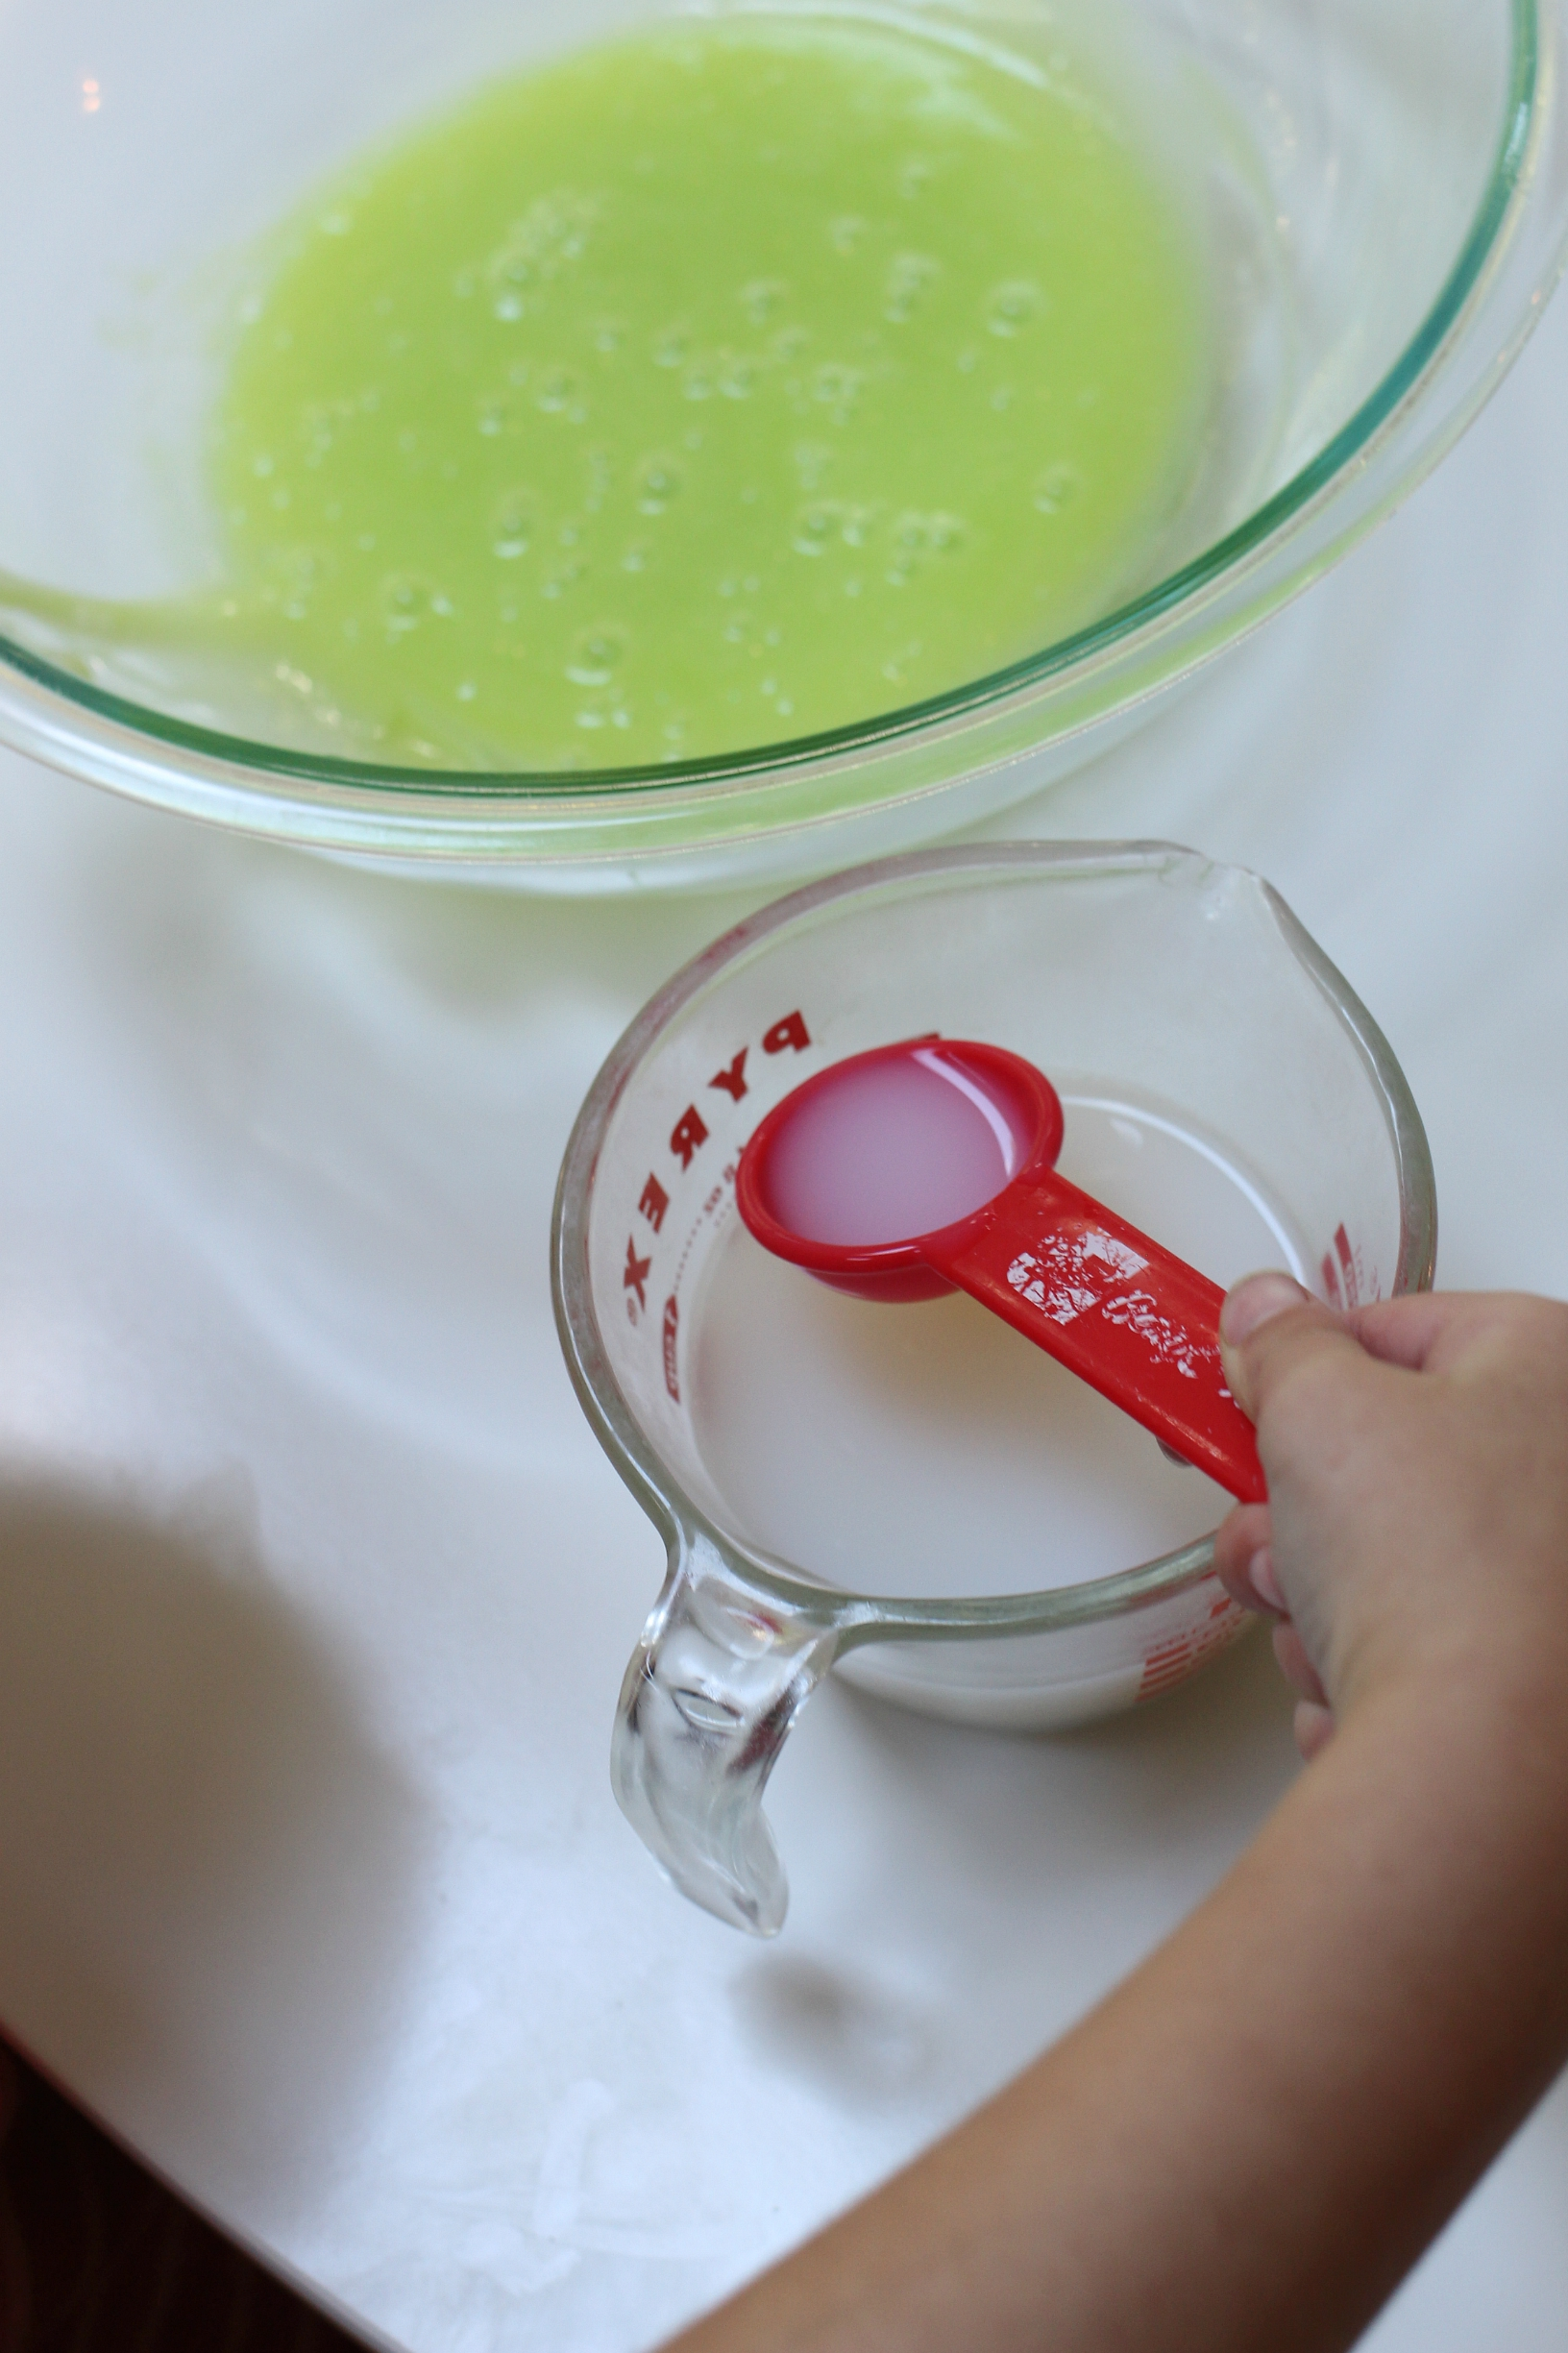 Halloween slime recipe from no time for flash cards